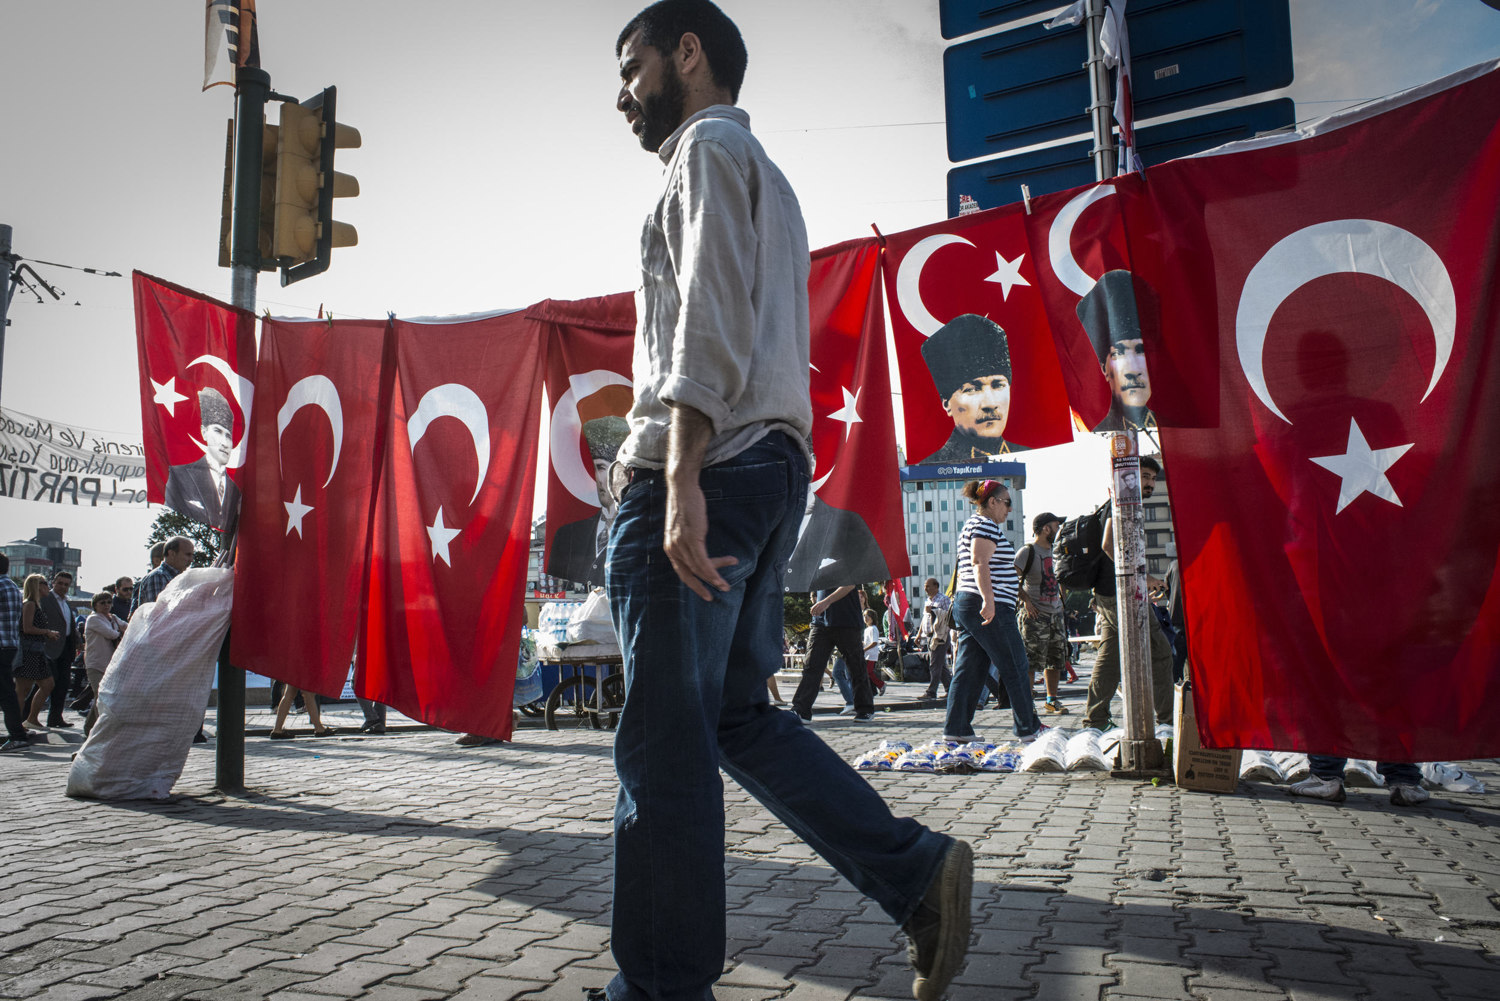 A man walks buy flags picturing the face of Ataturk, the founder of Modern Day Turkey on June 6, 2013.